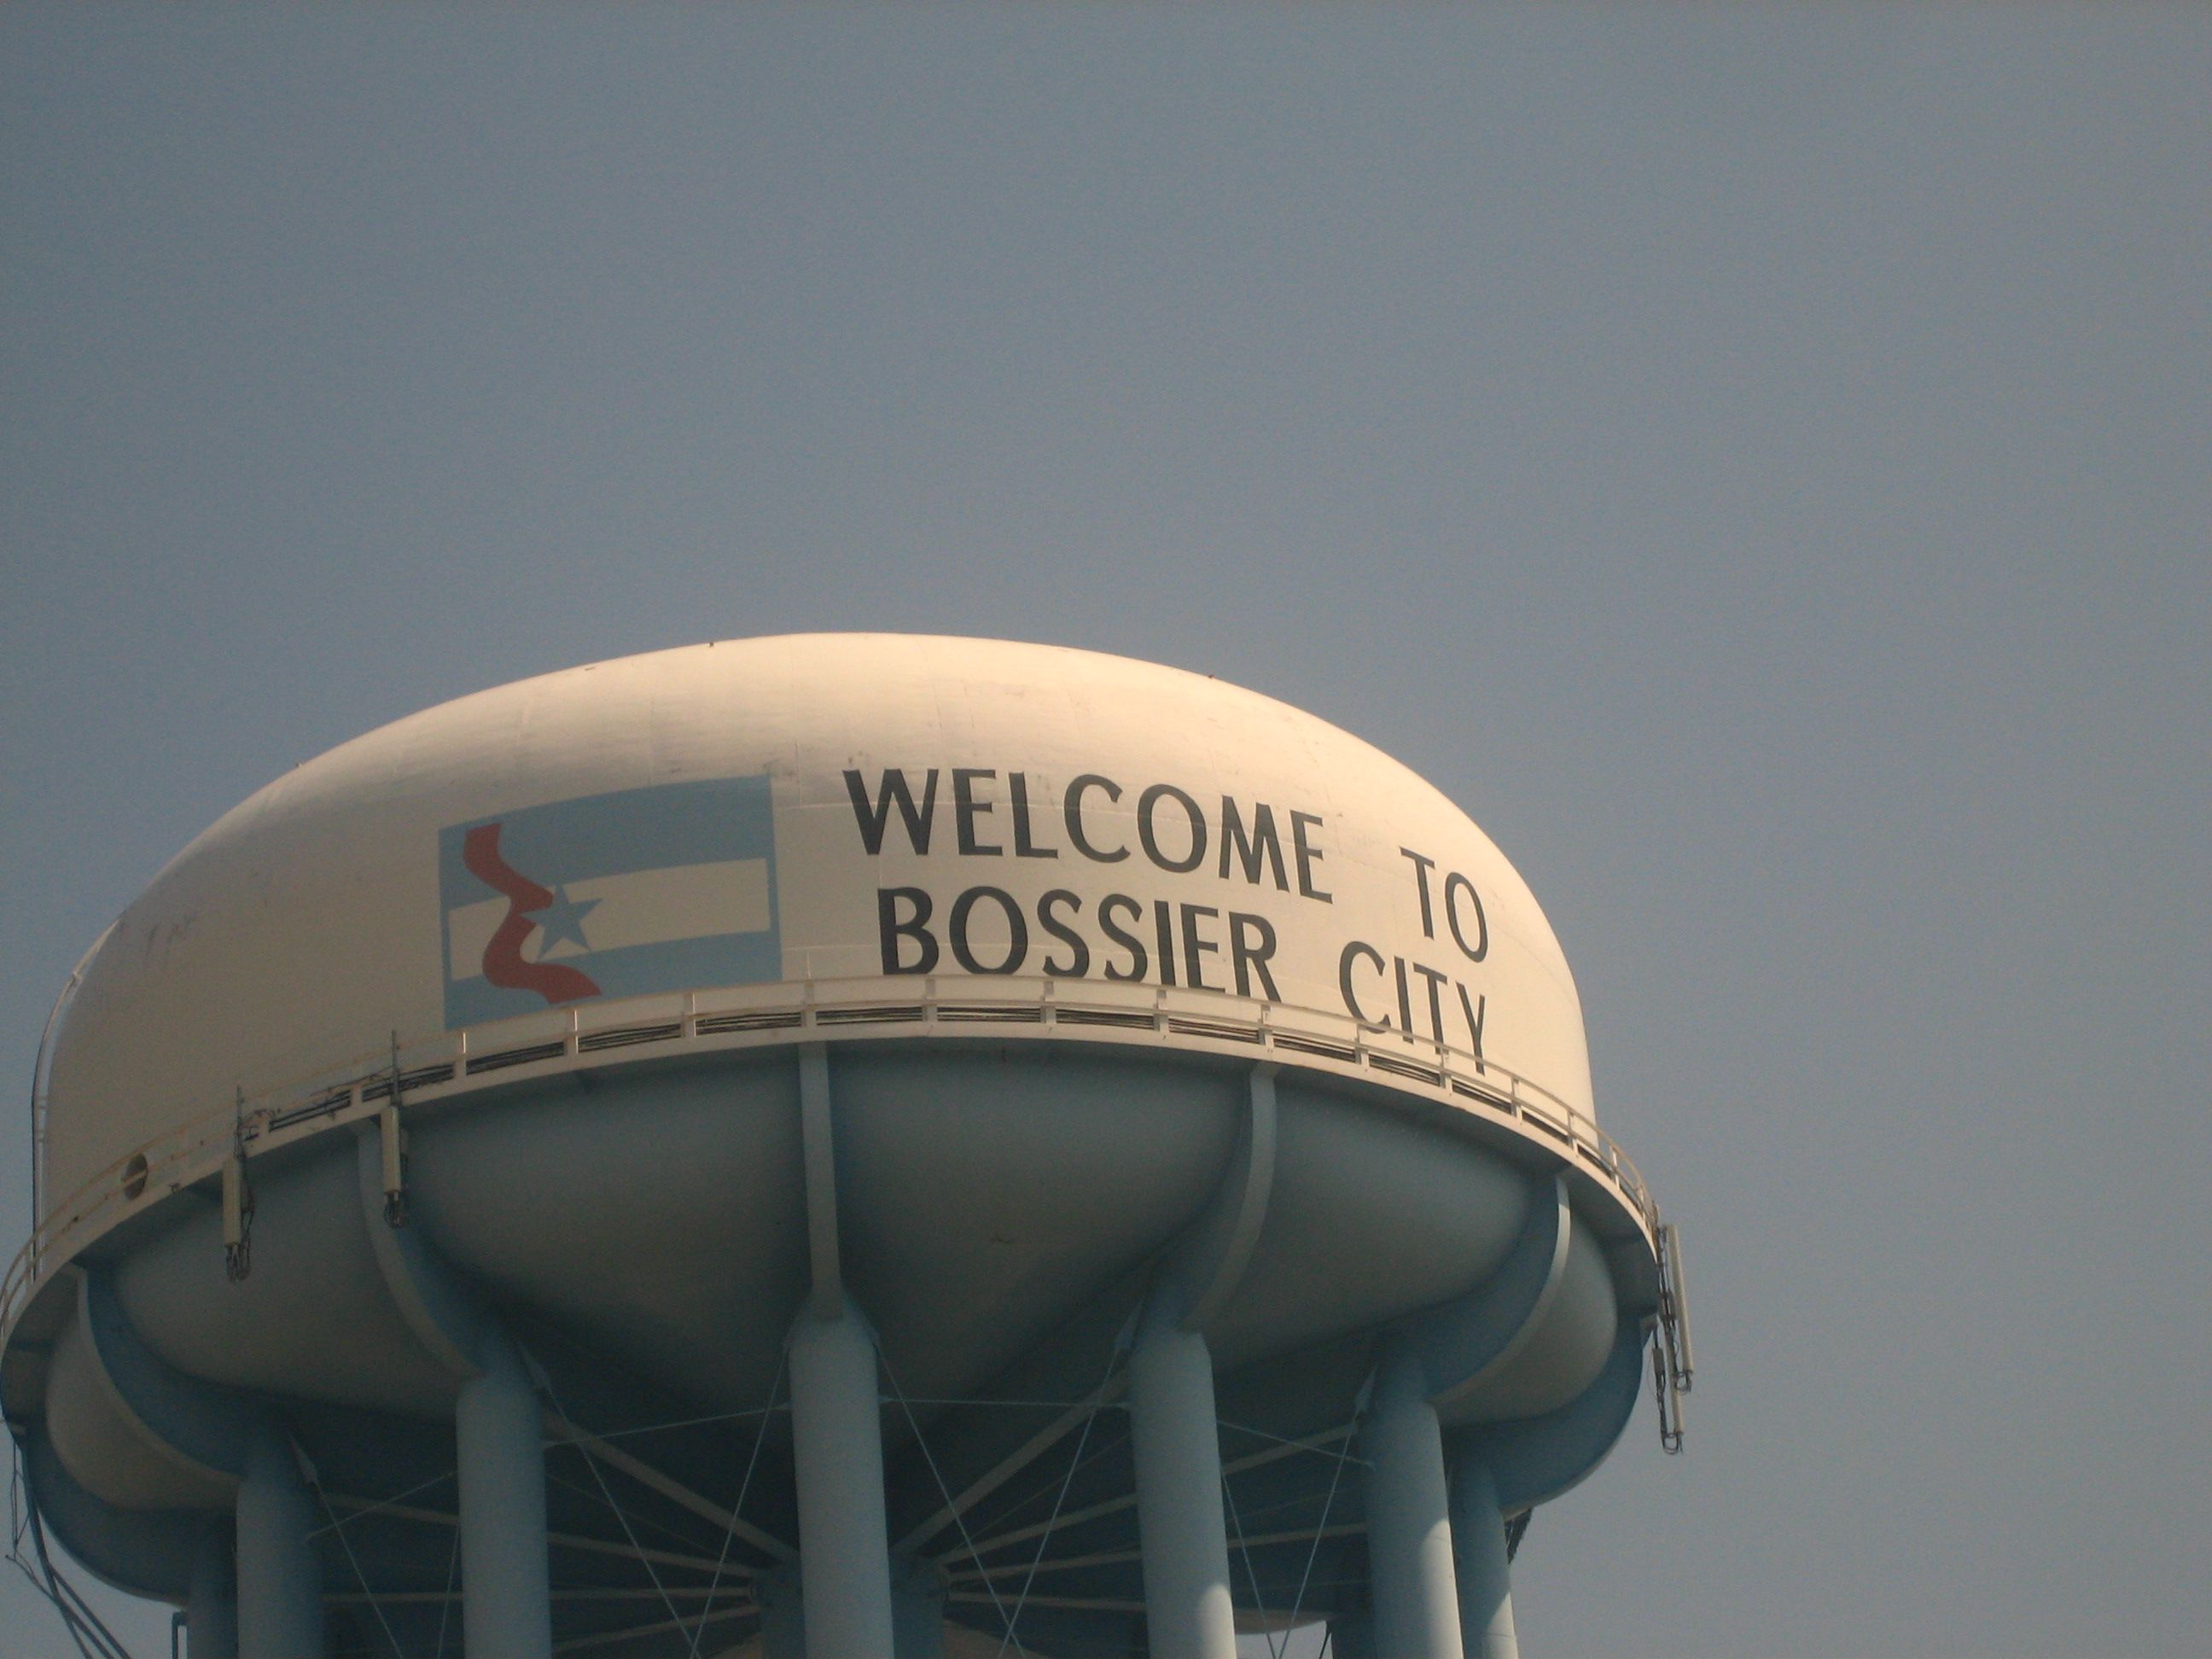 Stephenie Stacey Bossier City Water Tower Bossier City Louisiana